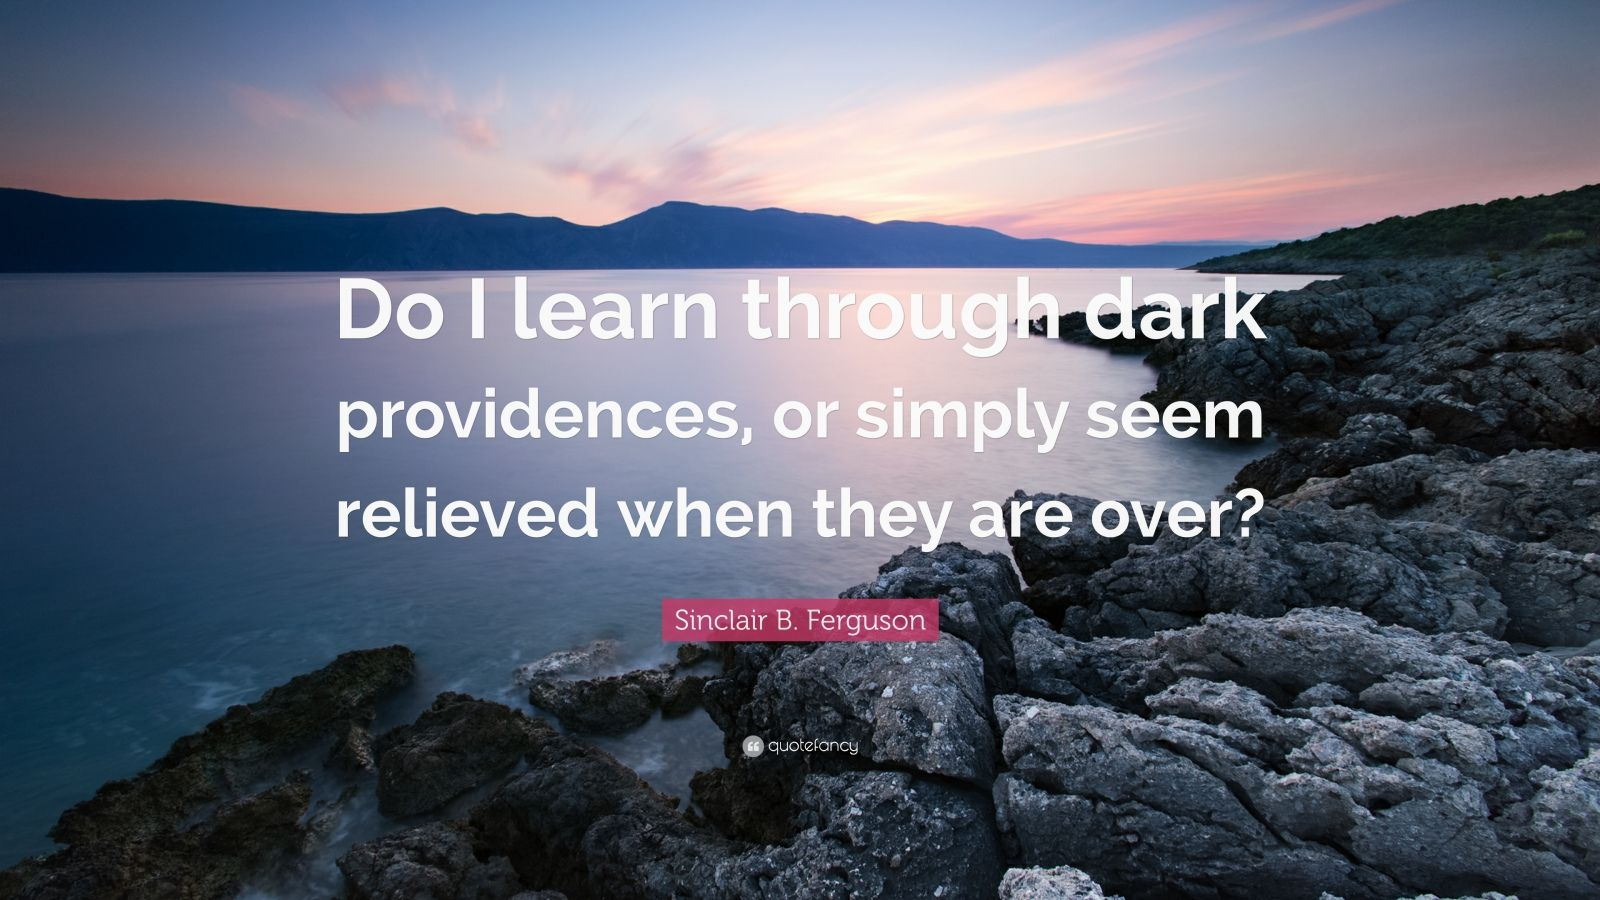 "Sinclair B. Ferguson Quote: ""Do I learn through dark providences, or simply seem relieved when they are over?"""